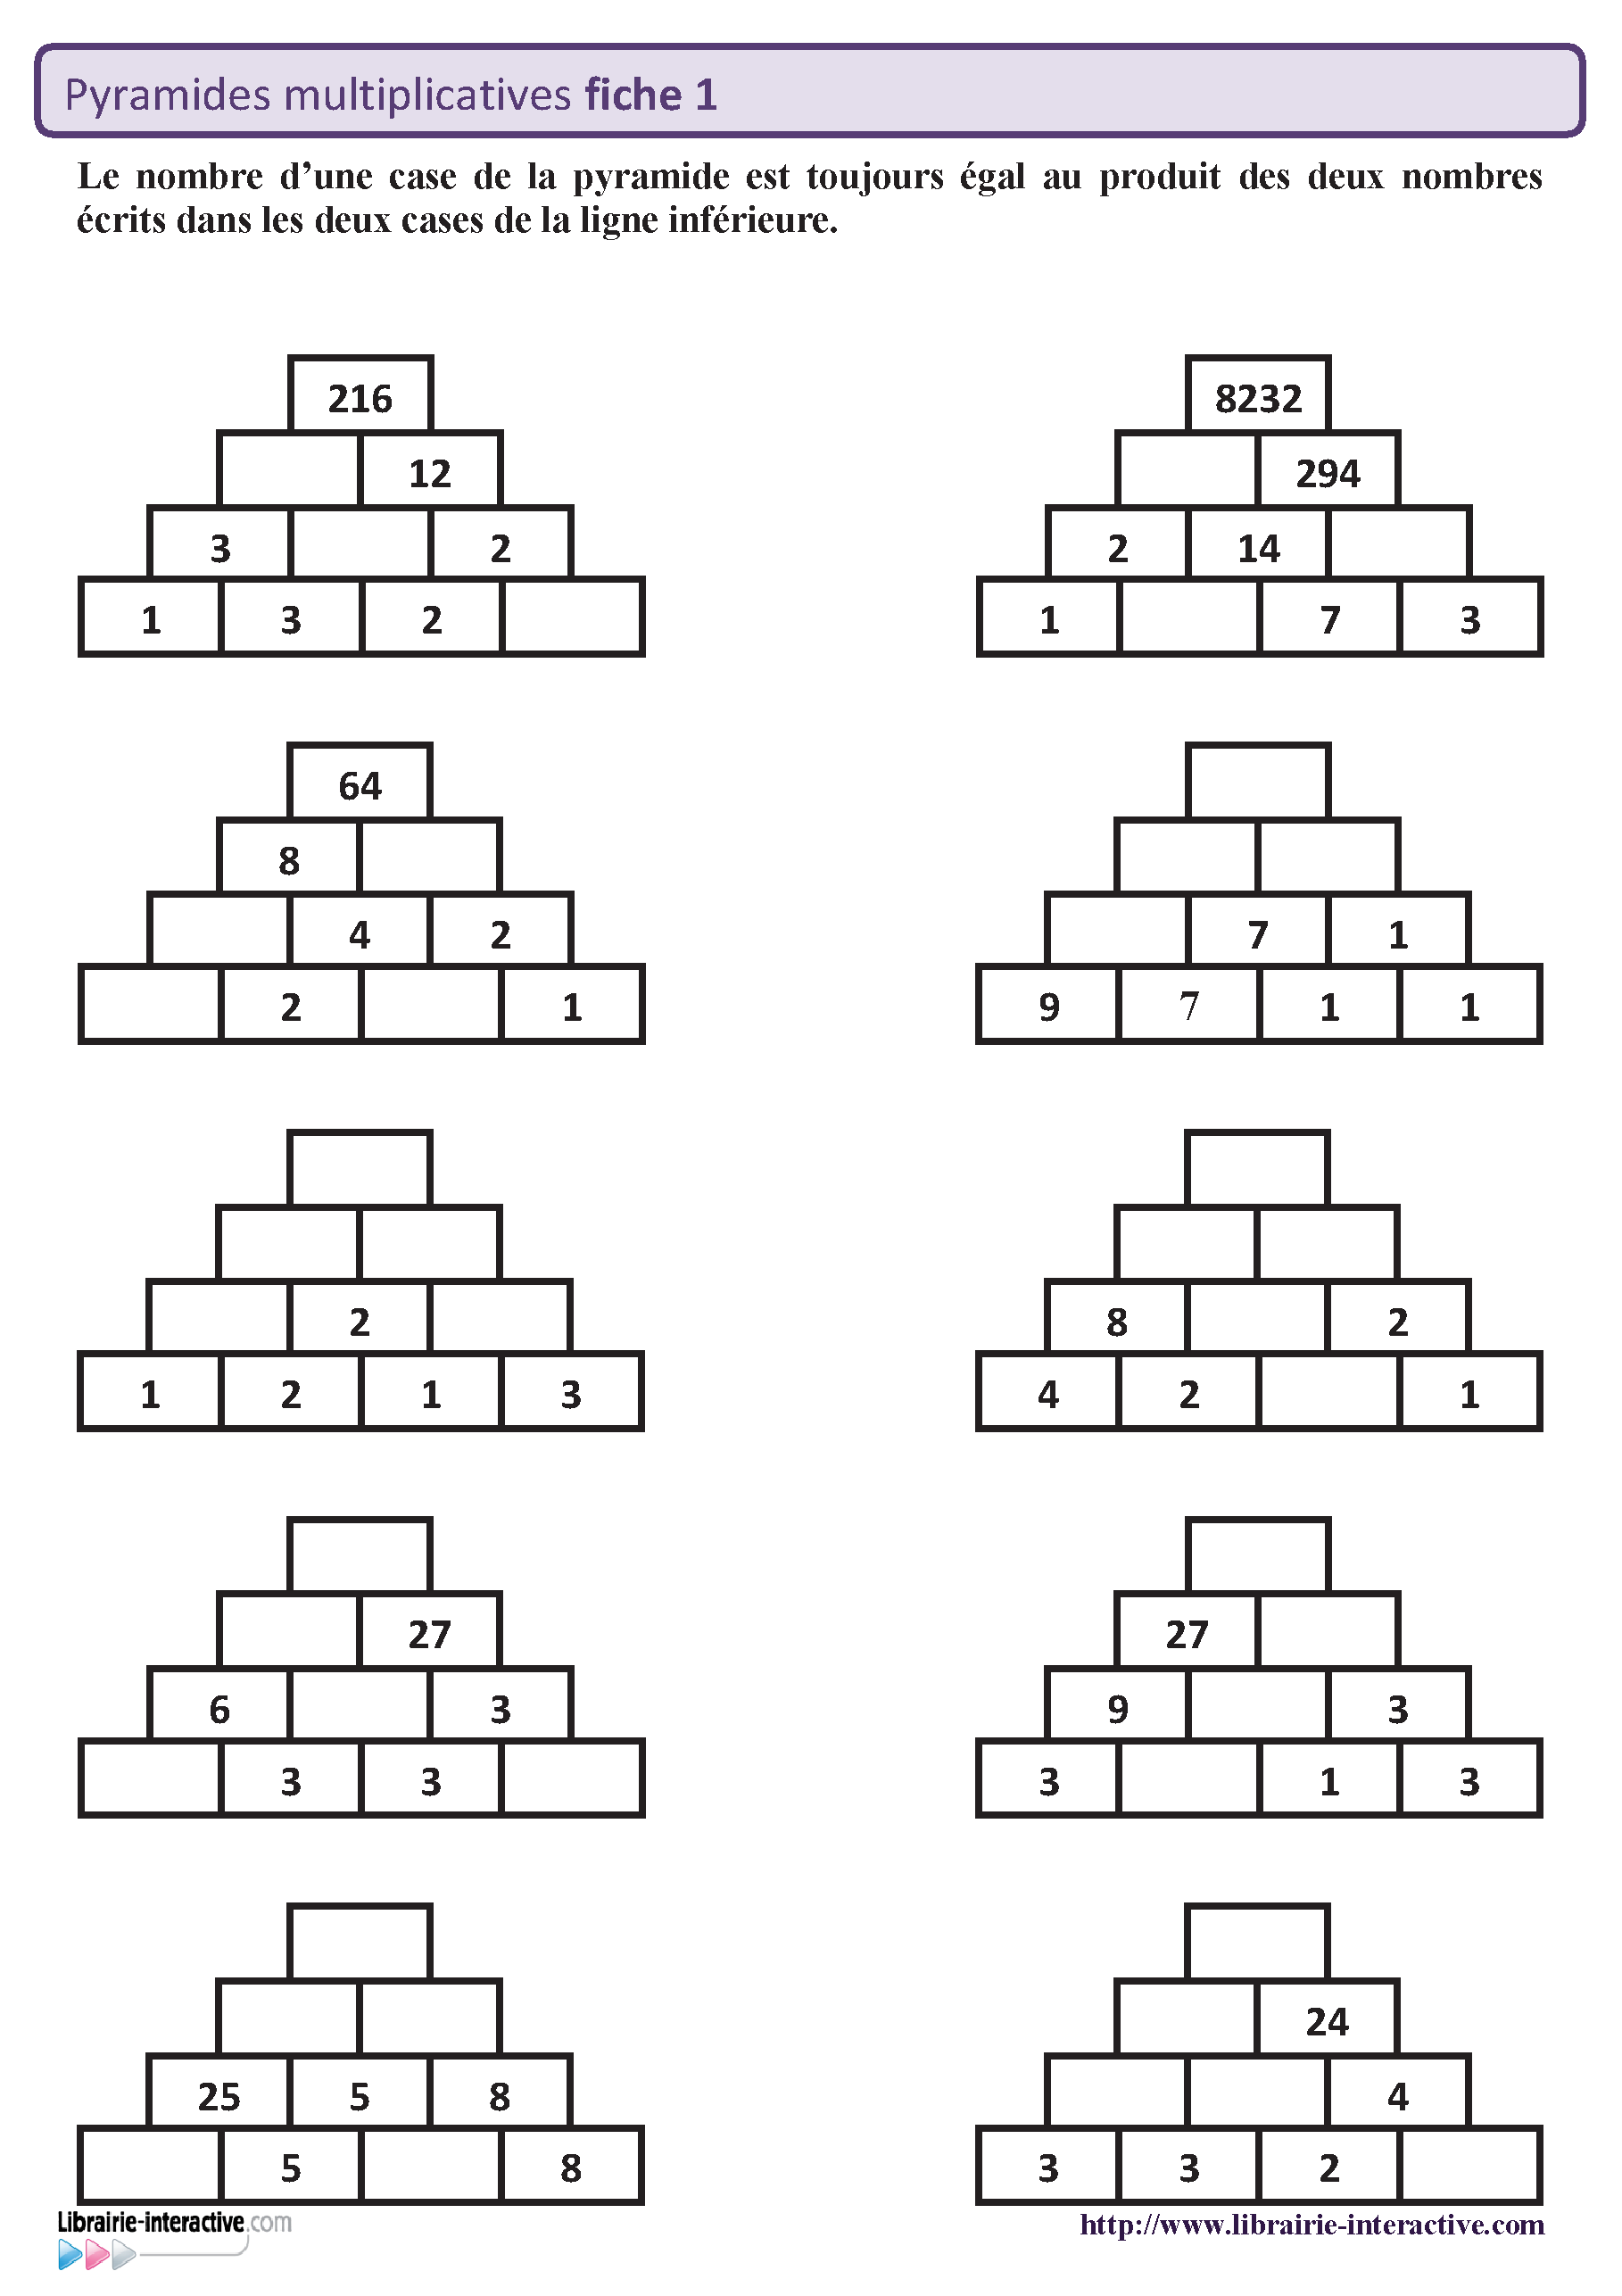 50 pyramides multiplicatives sur 5 fiches autocorrectives - Calcul mental table de multiplication ...